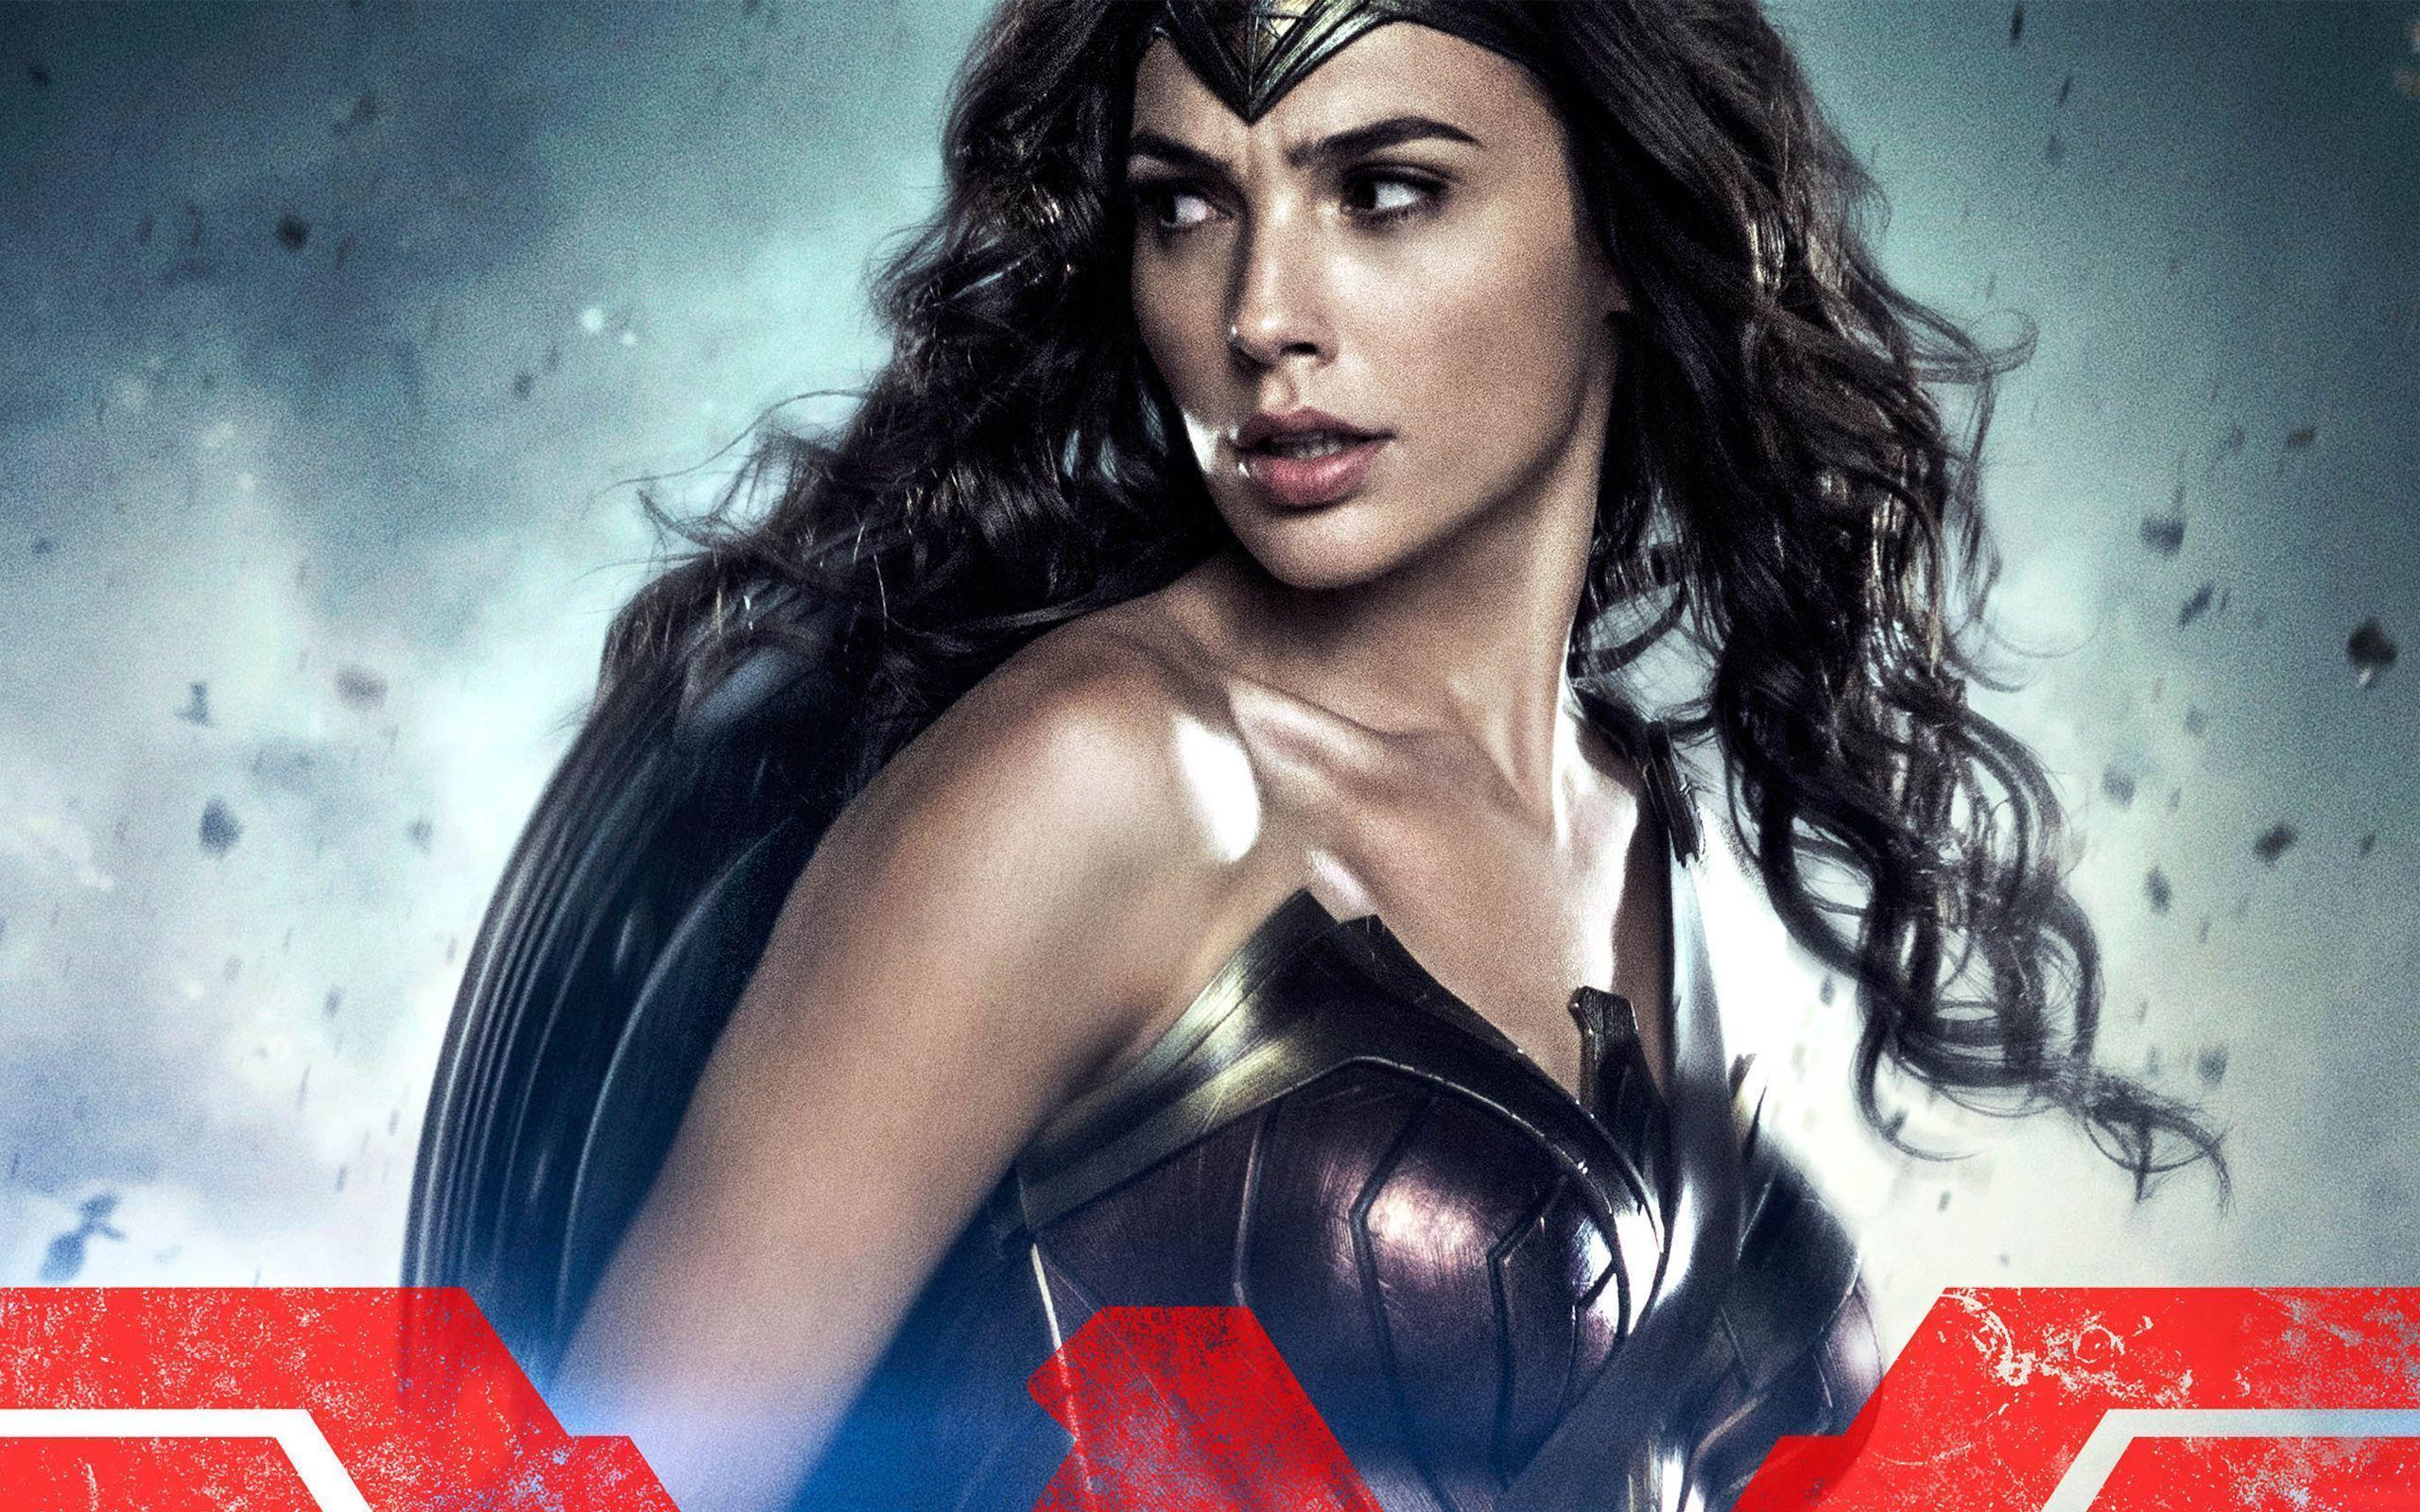 Batman v Superman Wonder Woman Wallpapers | HD Wallpapers